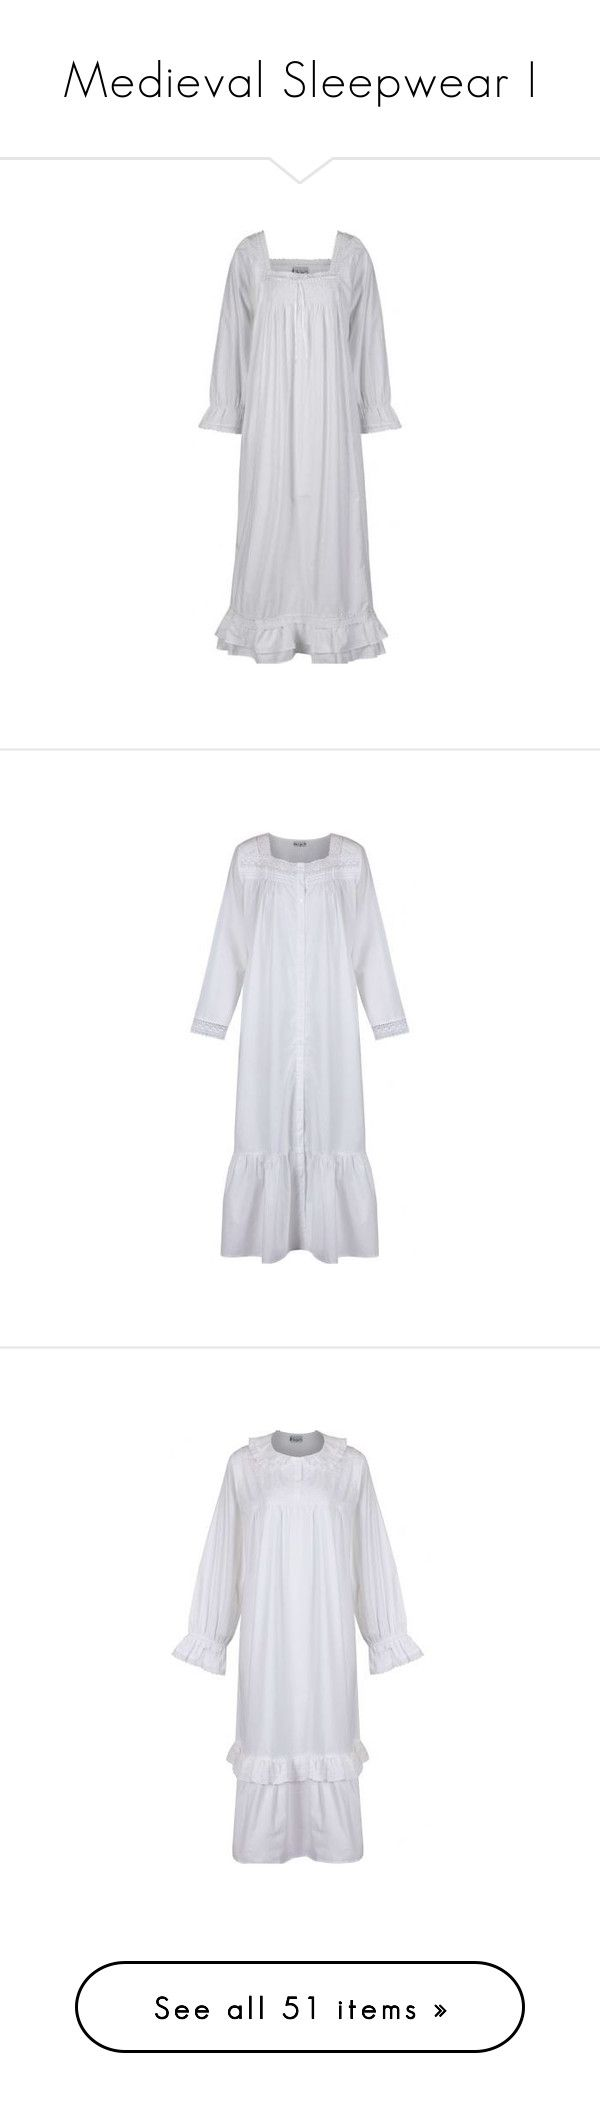 """""""Medieval Sleepwear I"""" by savagedamsel ❤ liked on Polyvore featuring intimates, sleepwear, nightgowns, dresses, victorian cotton nightgown, long cotton nightdress, long cotton nightgown, cotton nightgown, long sleeve sleepwear and cotton sleep wear"""